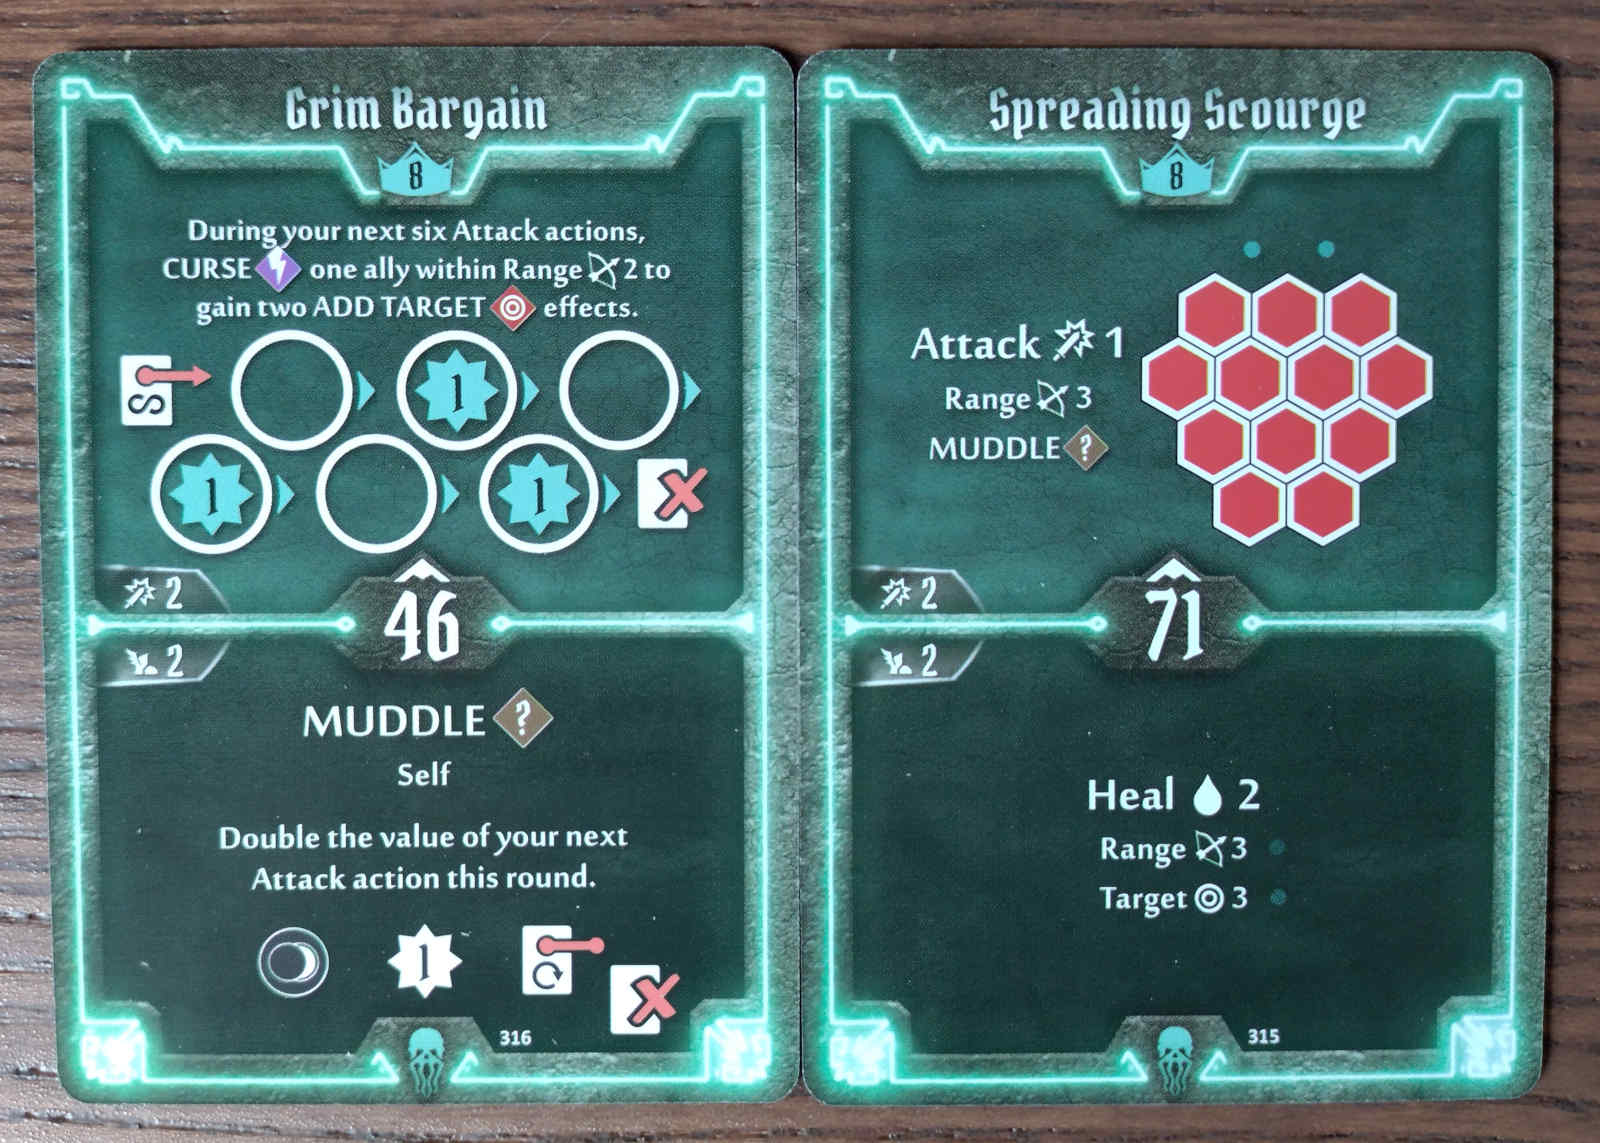 Level 8 Plagueherald cards - Grim Bargain and Spreading Scourge